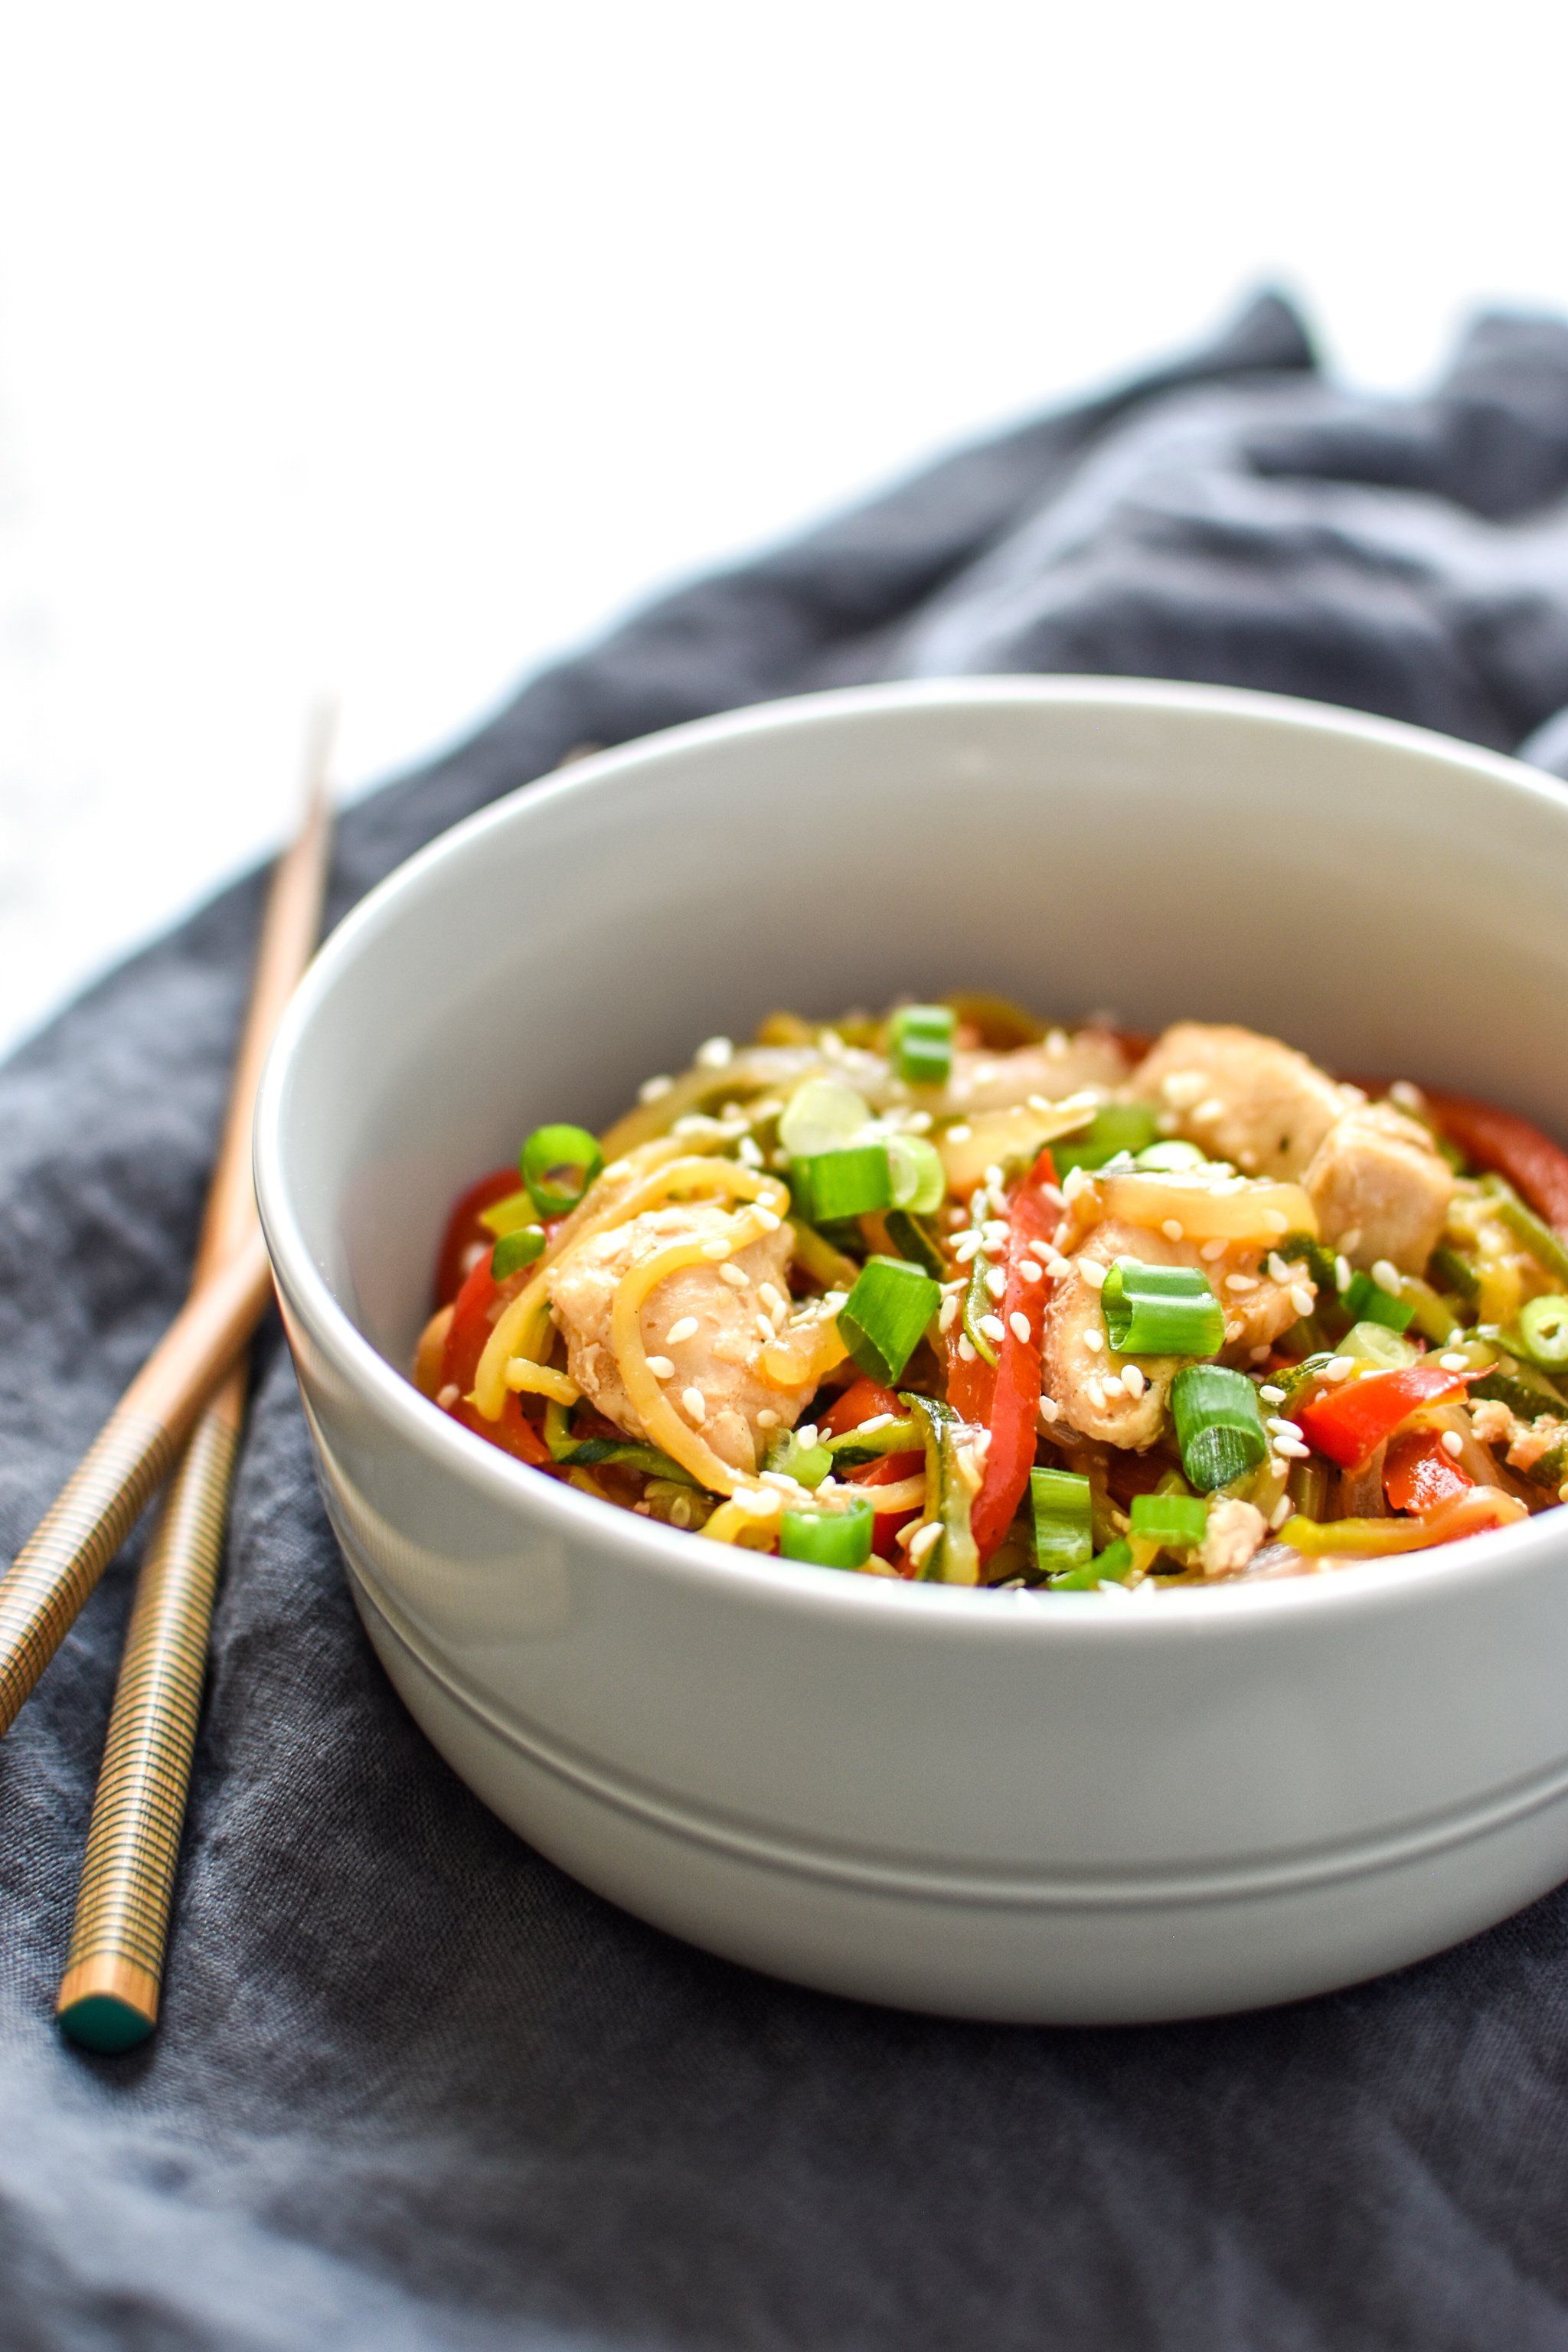 """Zucchini Chicken """"Lo Mein"""" - A noodle inspired dish made with zucchini noodles and juicy chicken breast. This Zucchini Chicken """"Lo Mein"""" will satisfy your pasta and take-out cravings! - ProjectMealPlan.com"""